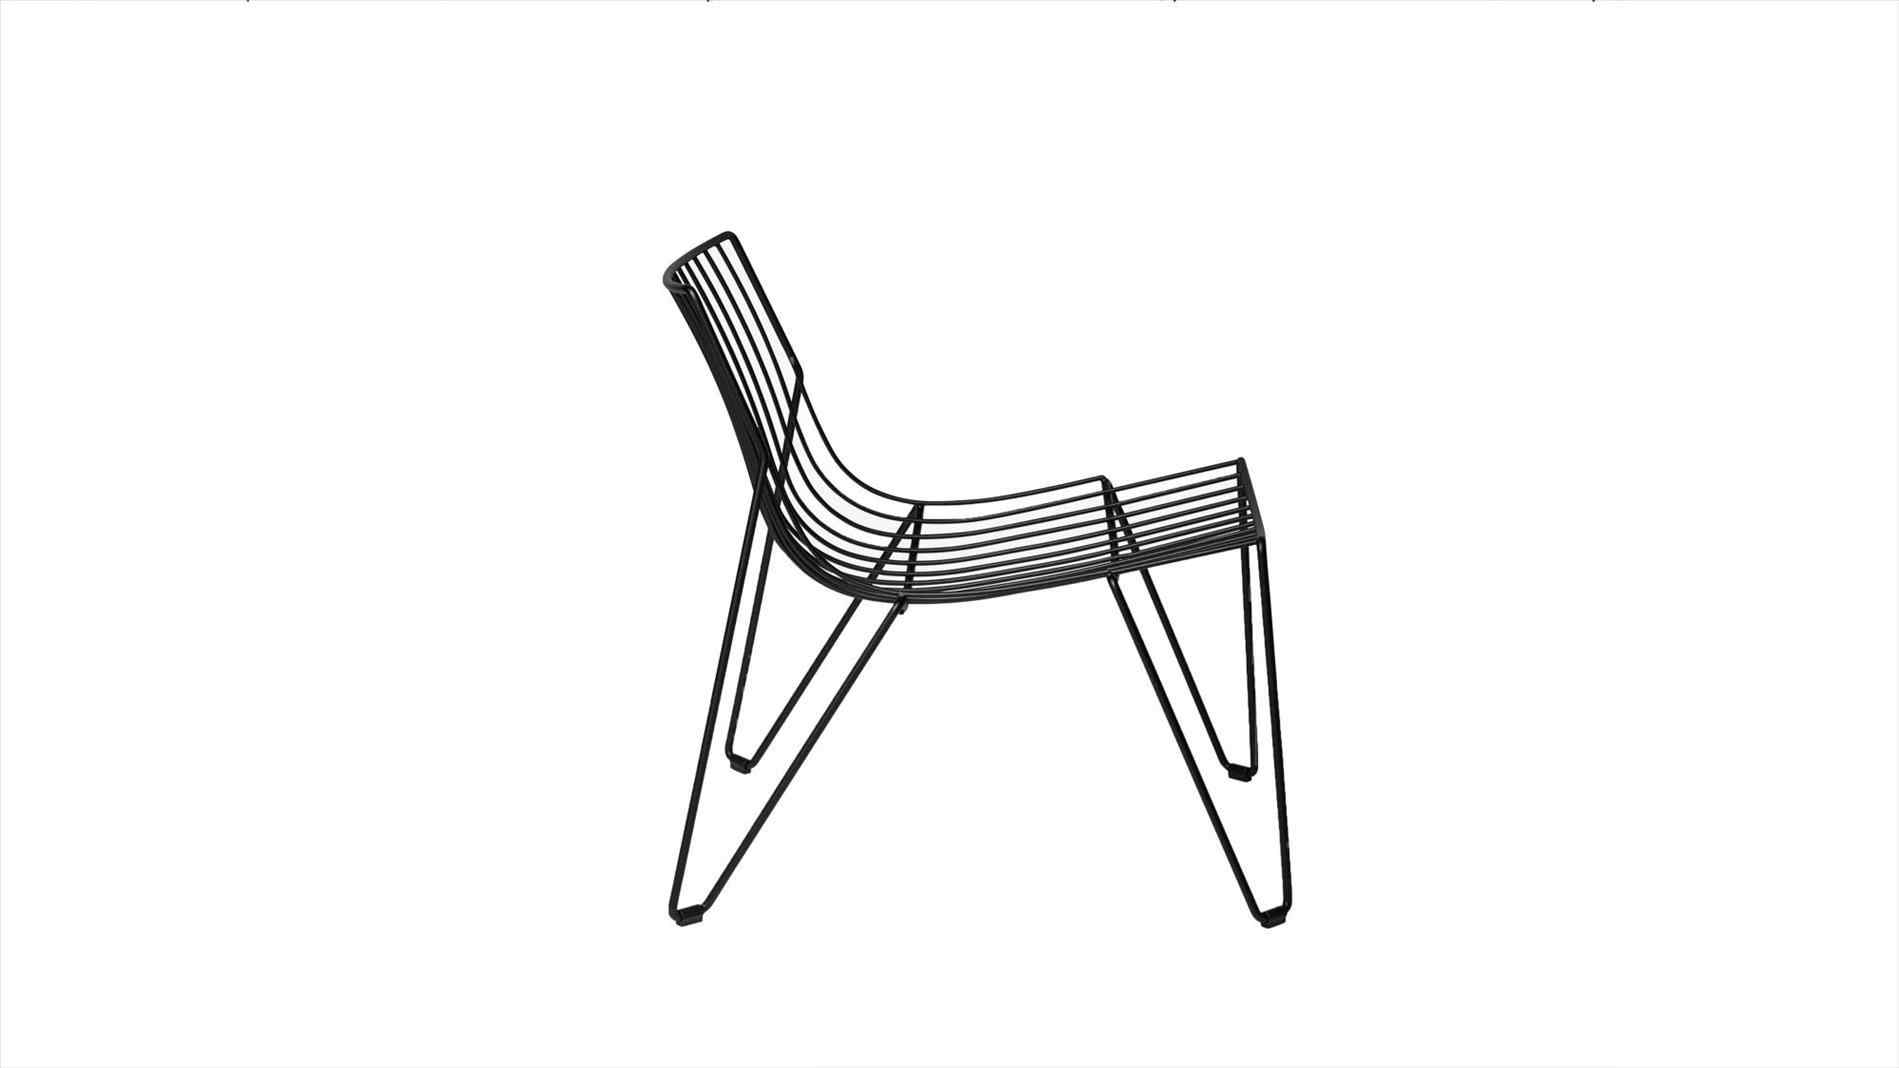 1899x1068 The Images Collection Of Beach Chair Drawing Easy Umbrella